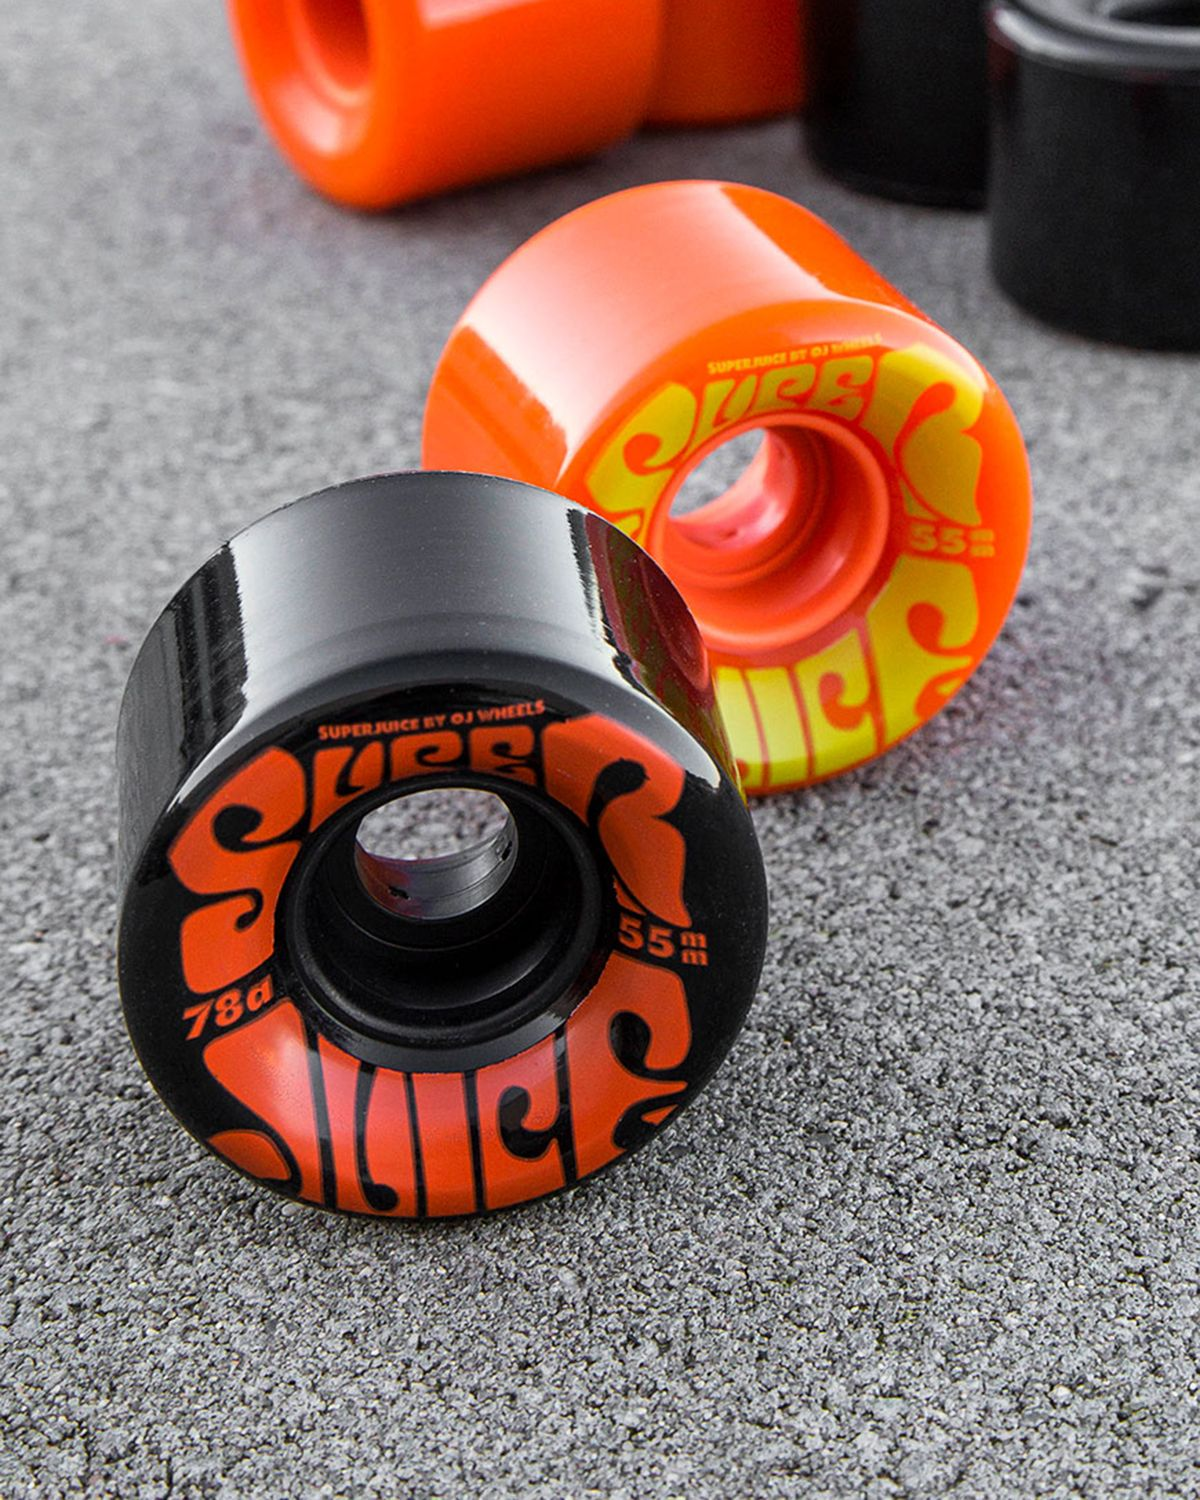 Perfect For Your Filmer Setup The New Oj Wheels Super Juice In